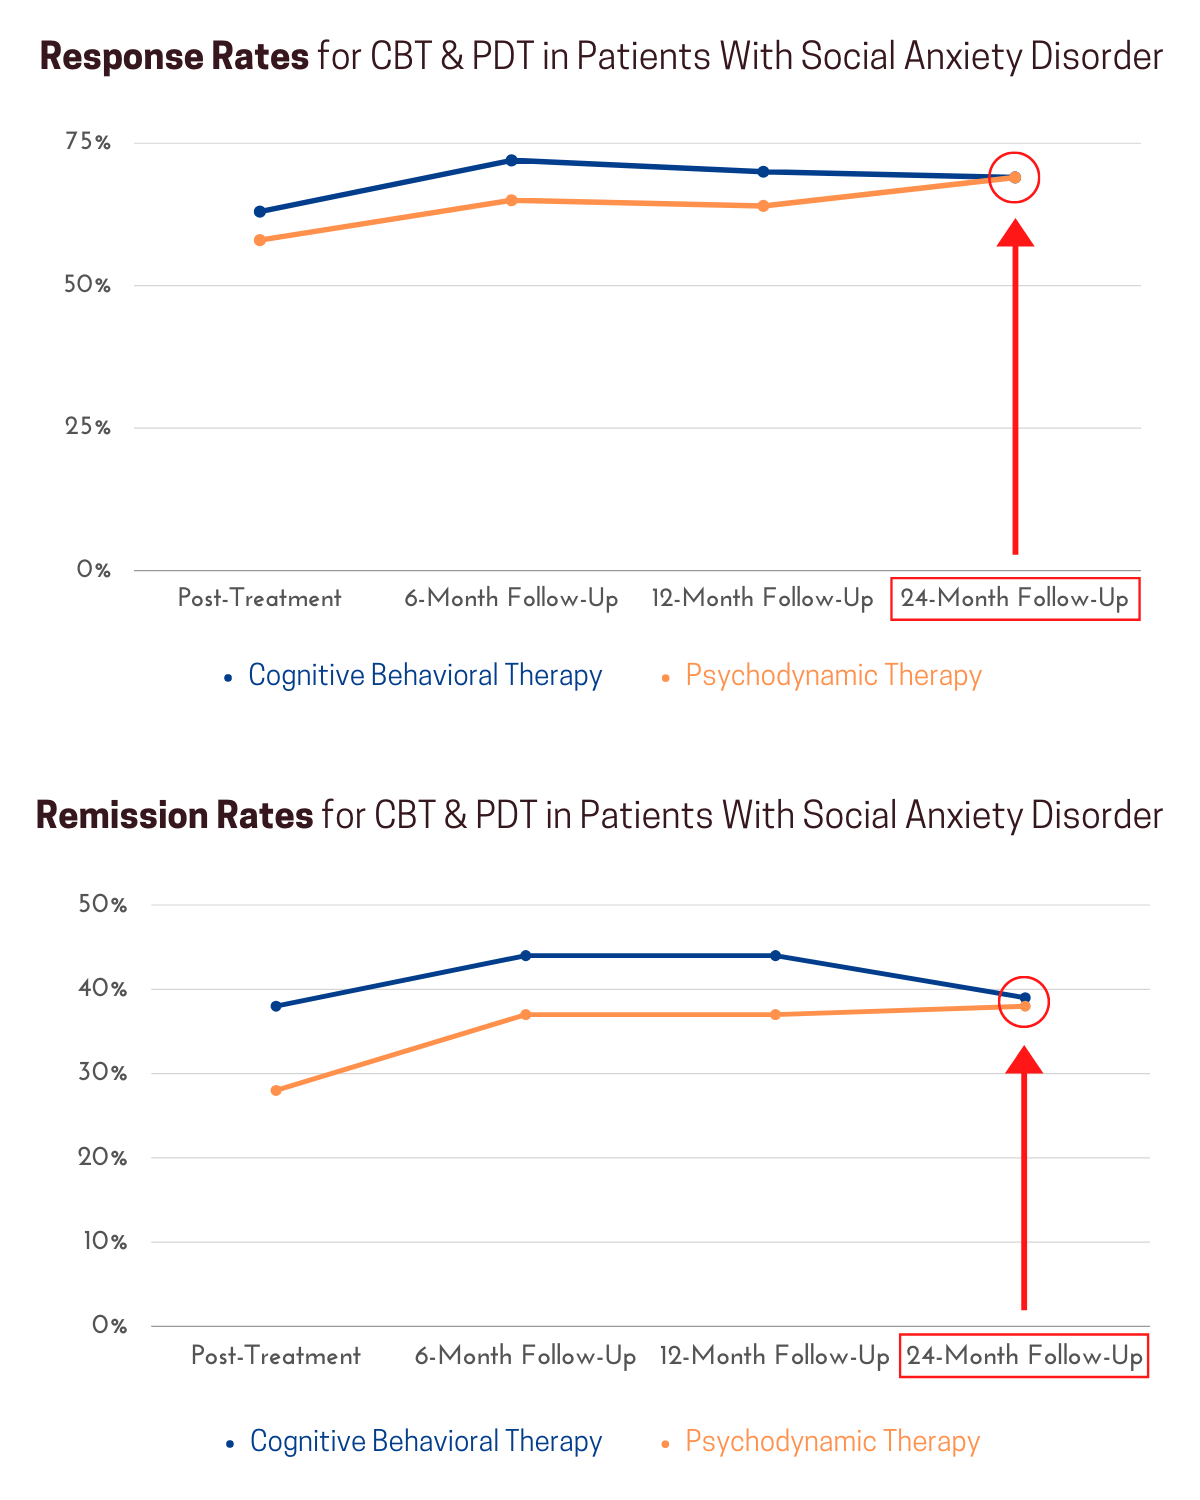 A long-term study found almost identical efficacy for cognitive behavioral therapy and psychodynamic therapy in the treatment of social anxiety disorder.